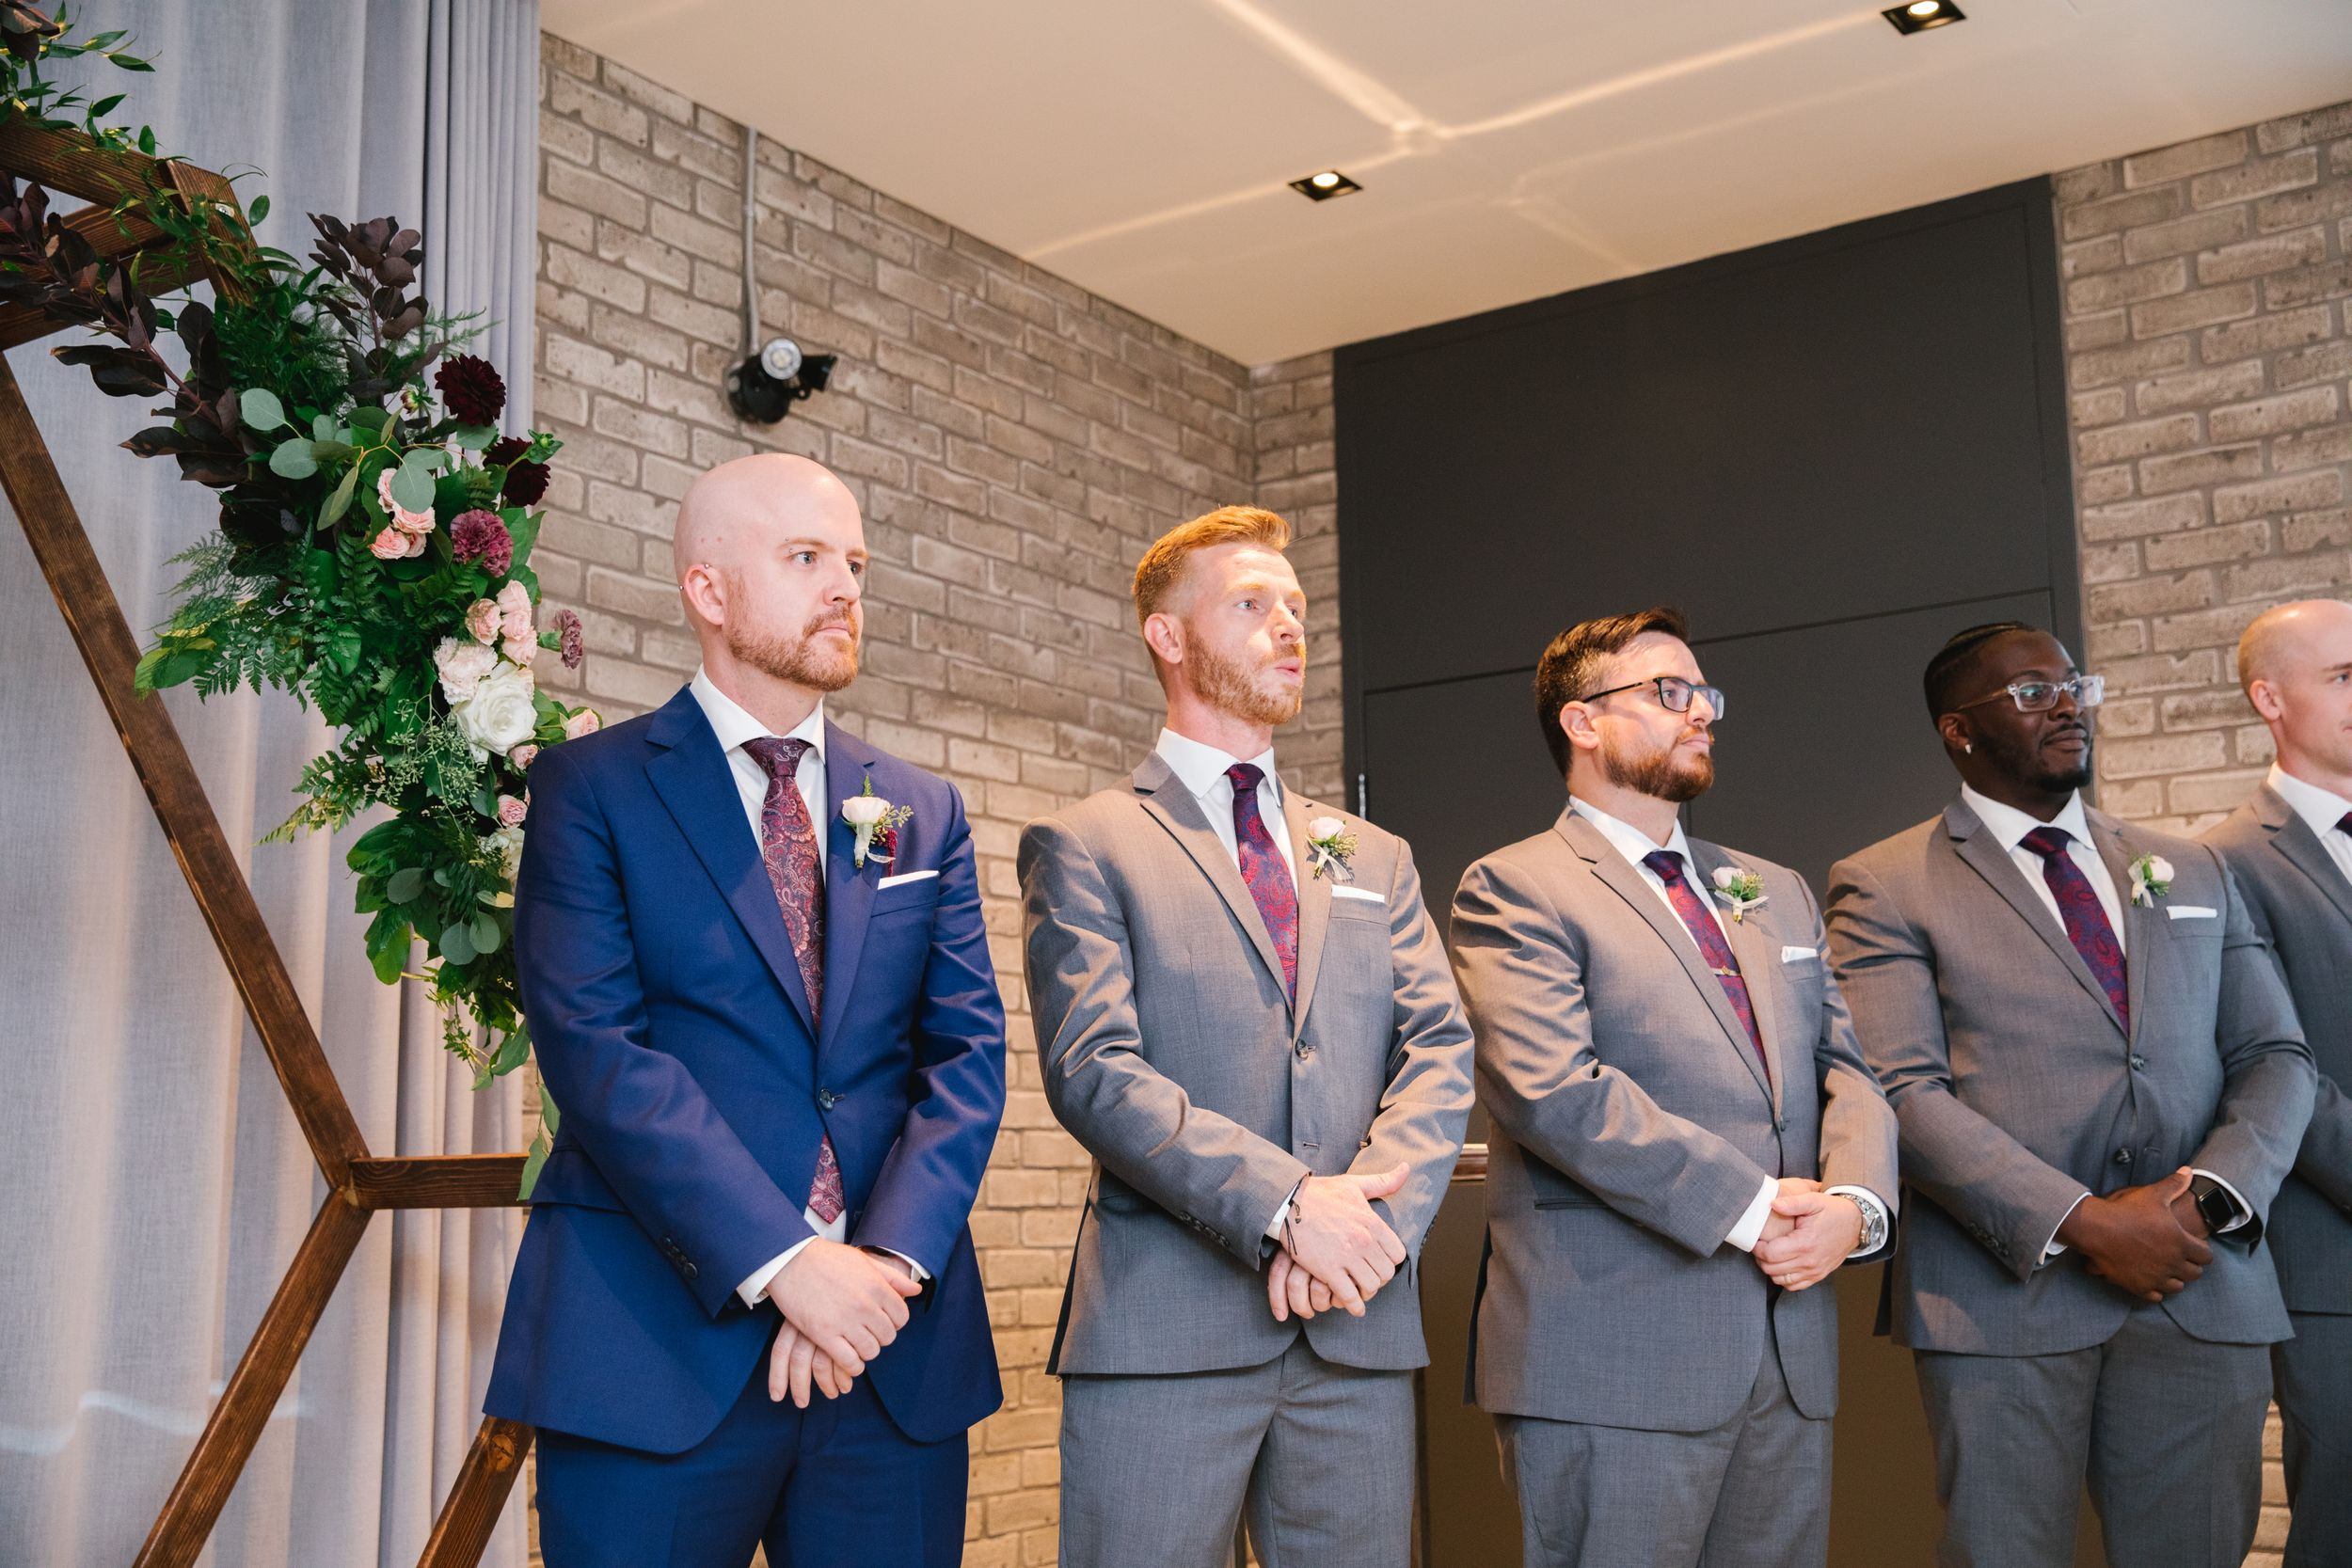 groom waiting for bride to walk down the aisle with his groomsmen